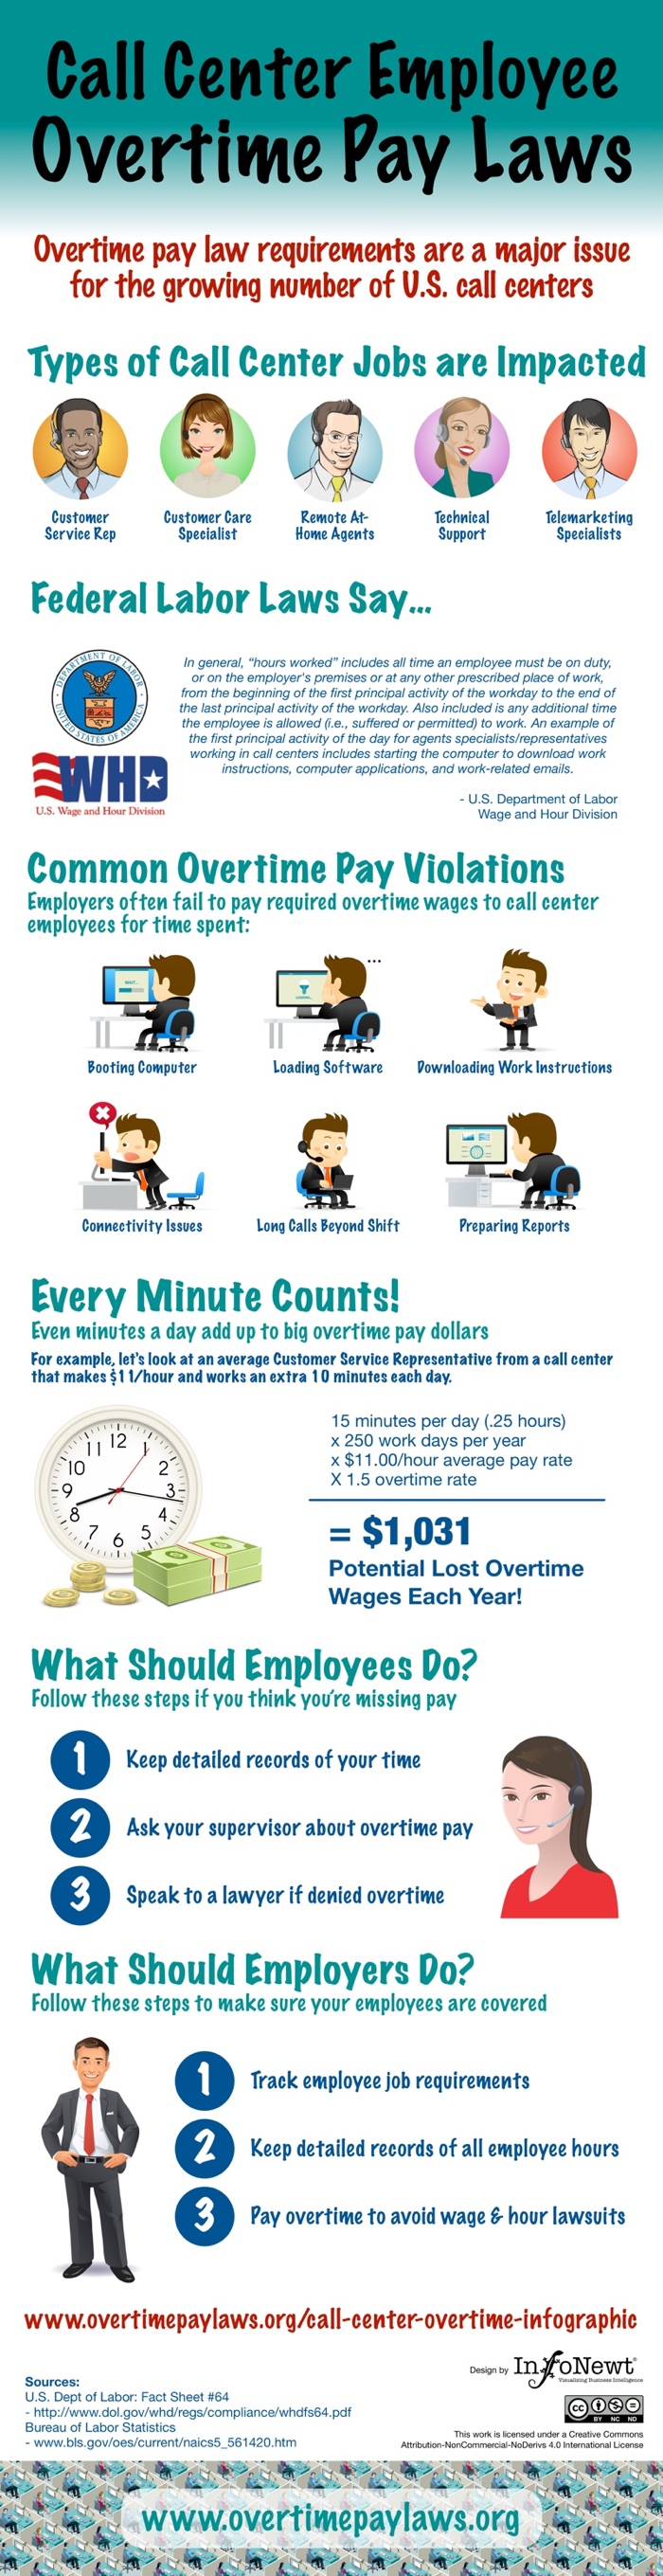 Overtime Pay Laws for Call Center Employees